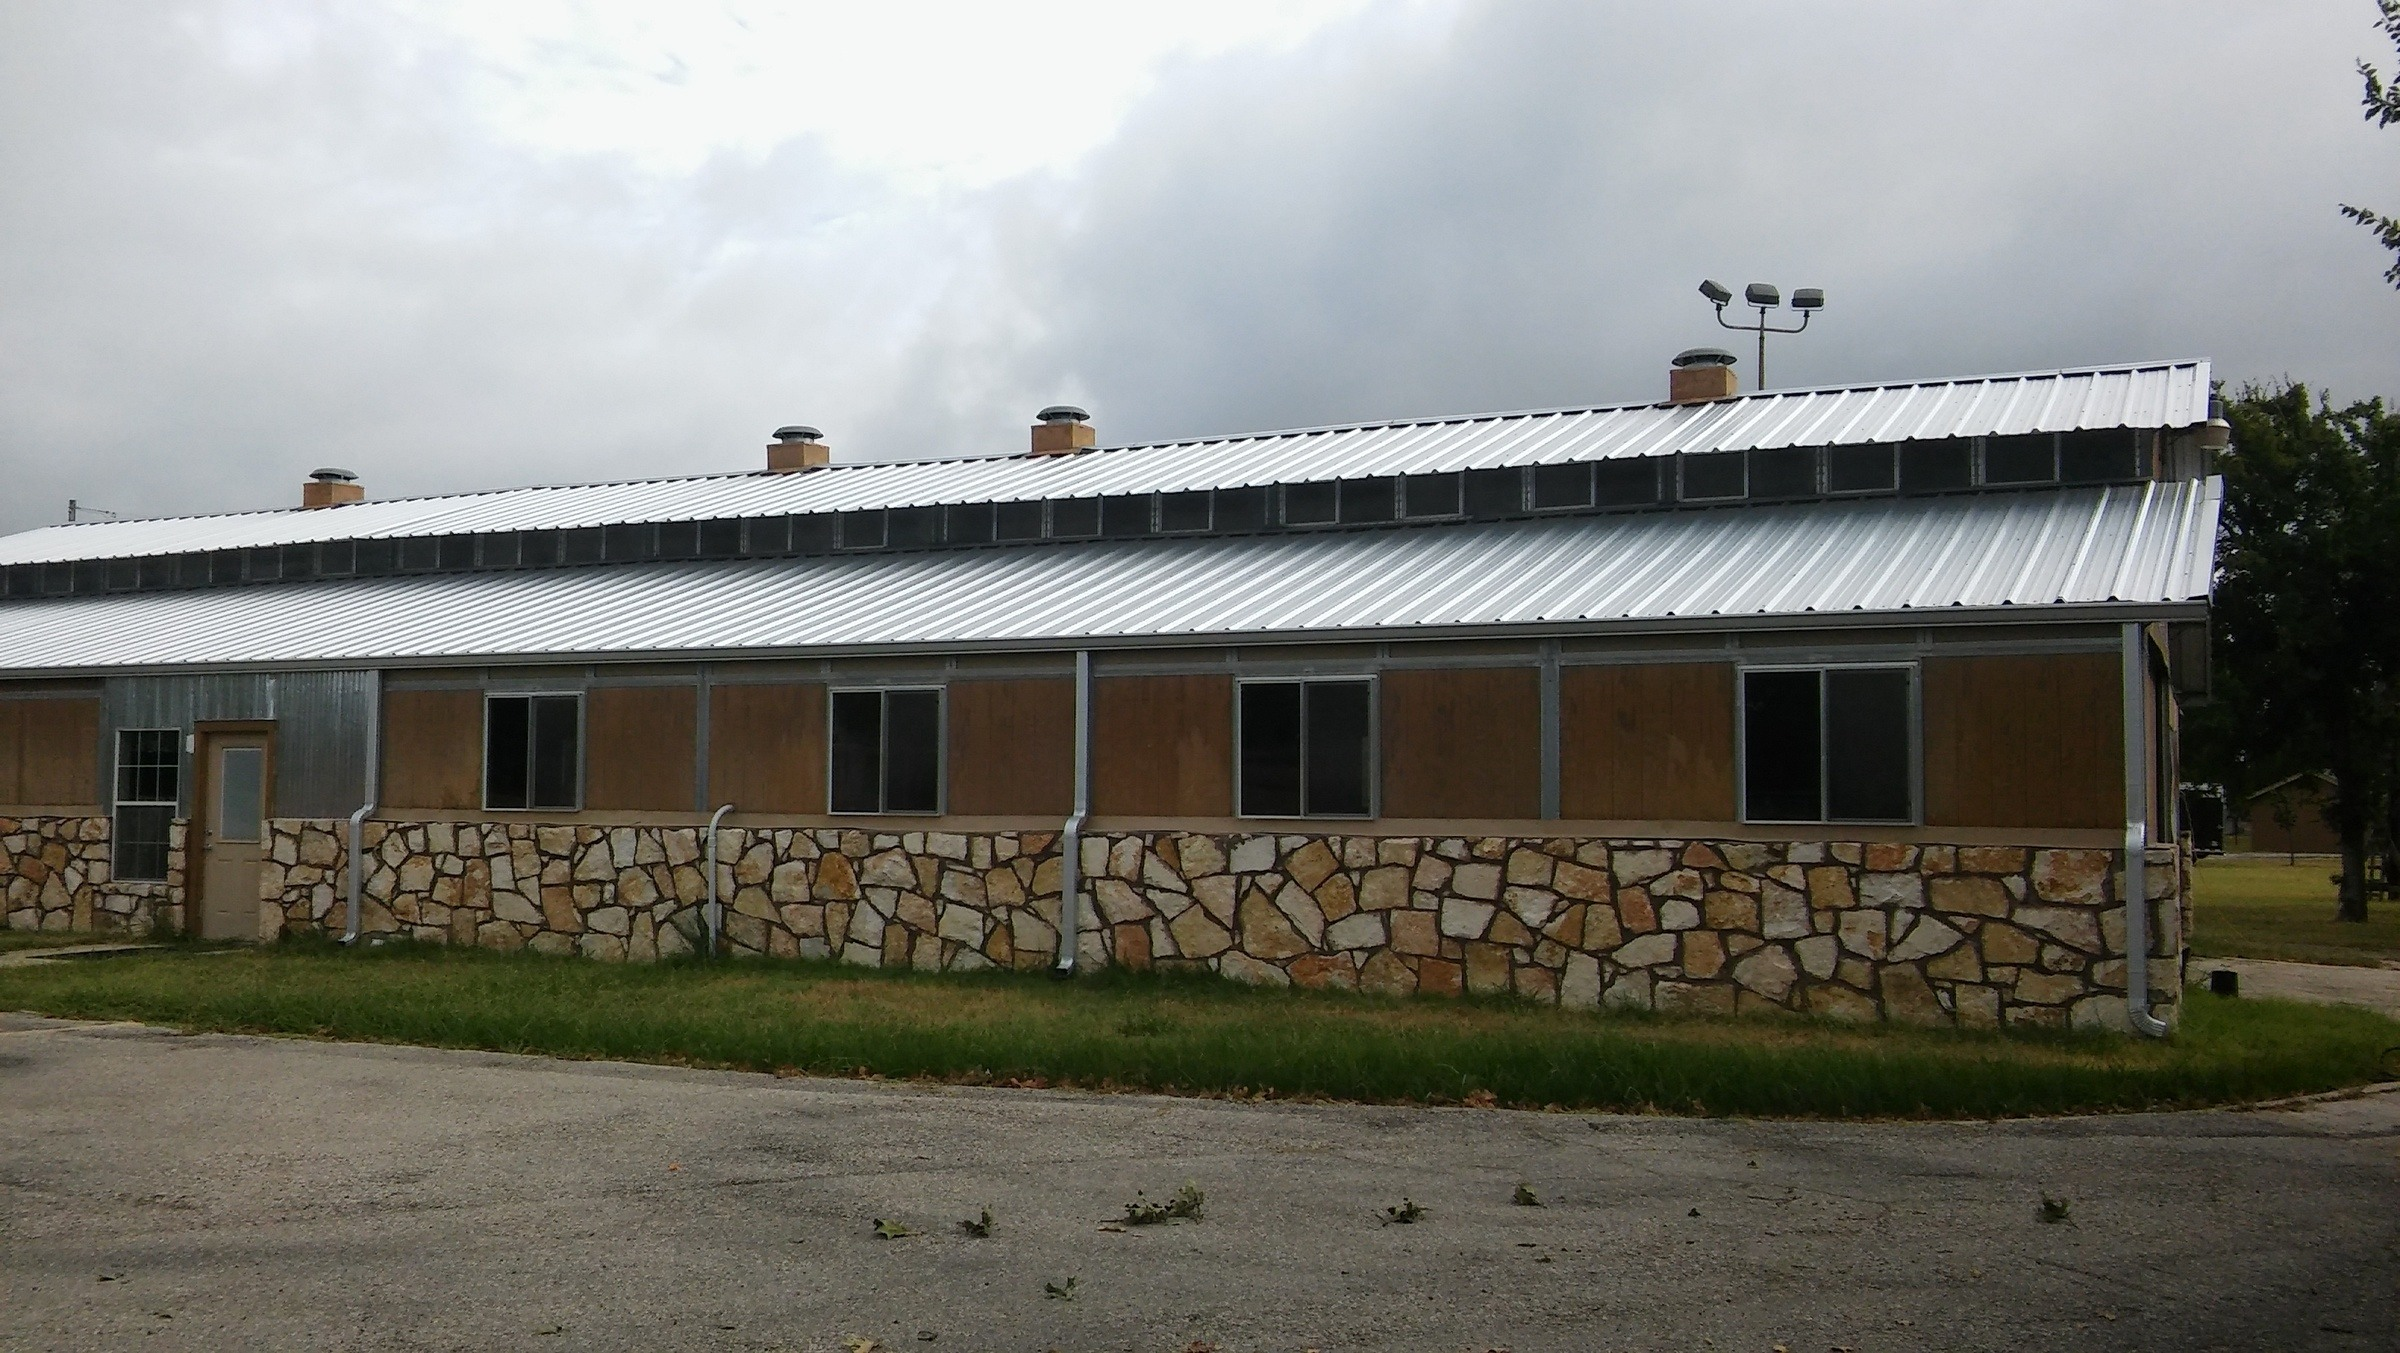 Side view of the metal barn prior to refurbishment.